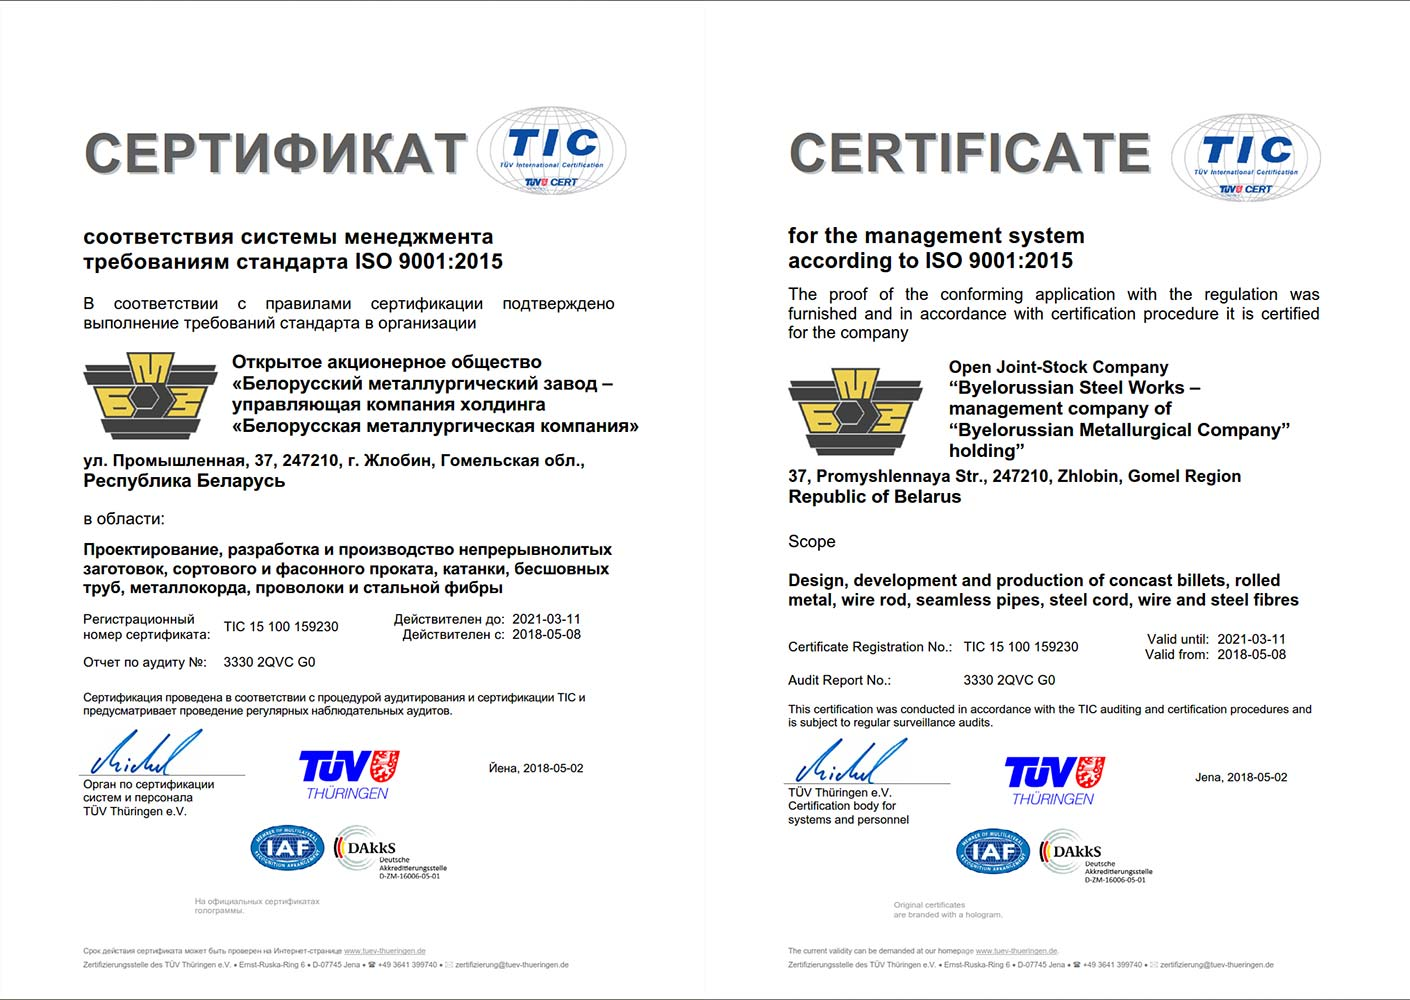 Certificates for the qms certificate tic 15 100 159230 tuv certificates for the qms 1betcityfo Image collections